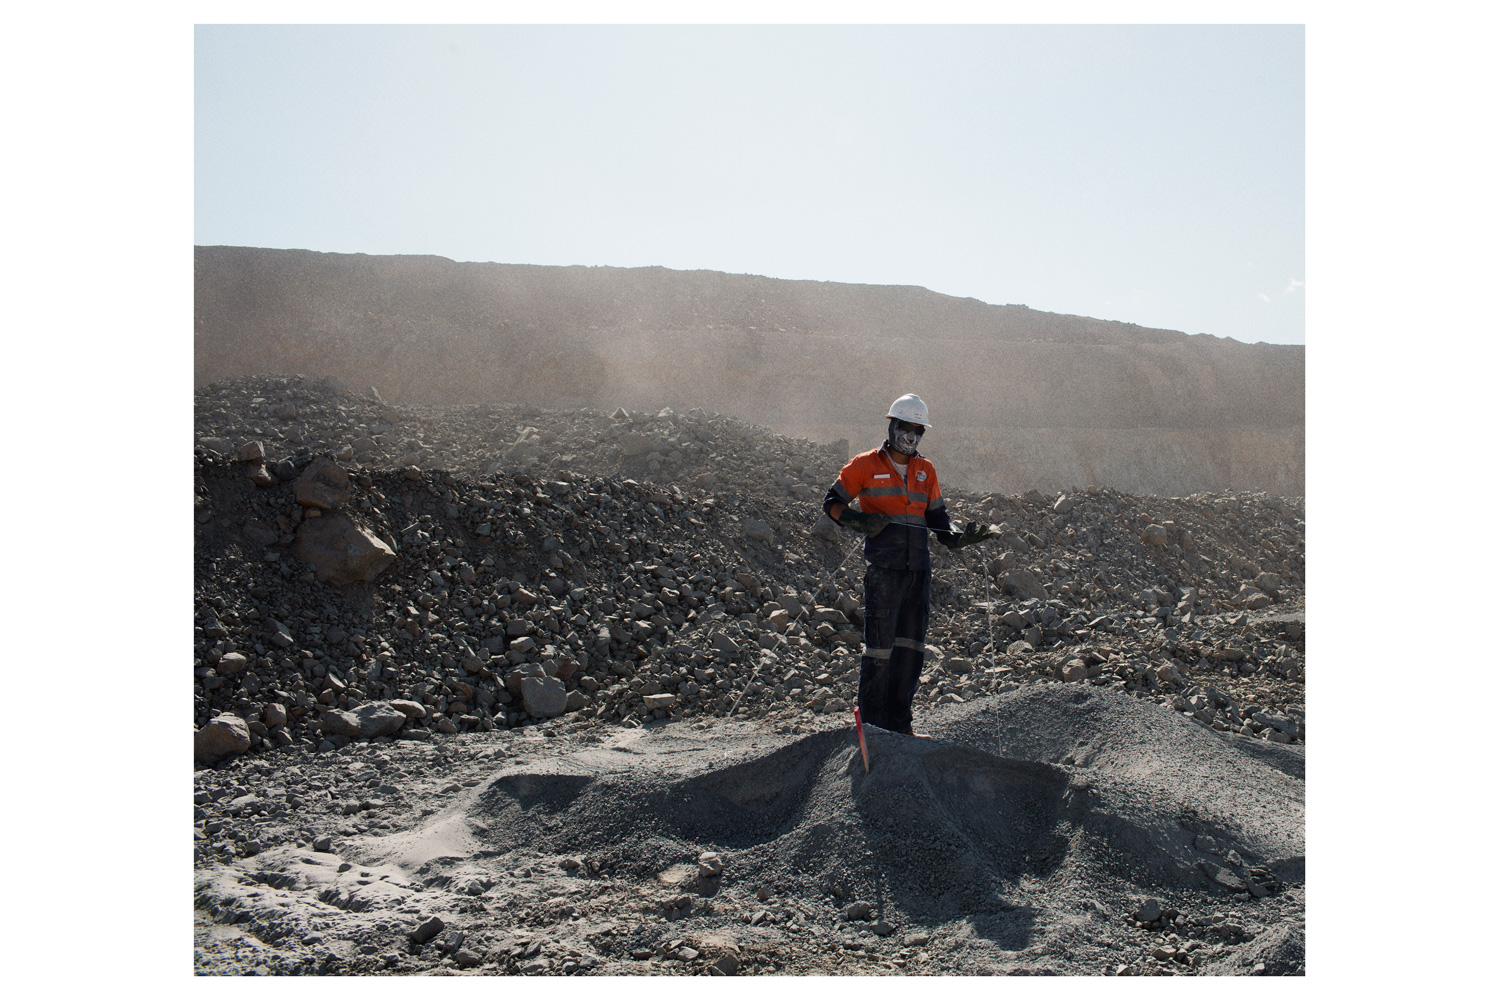 View of the open pit area at Oyu Tolgoi.